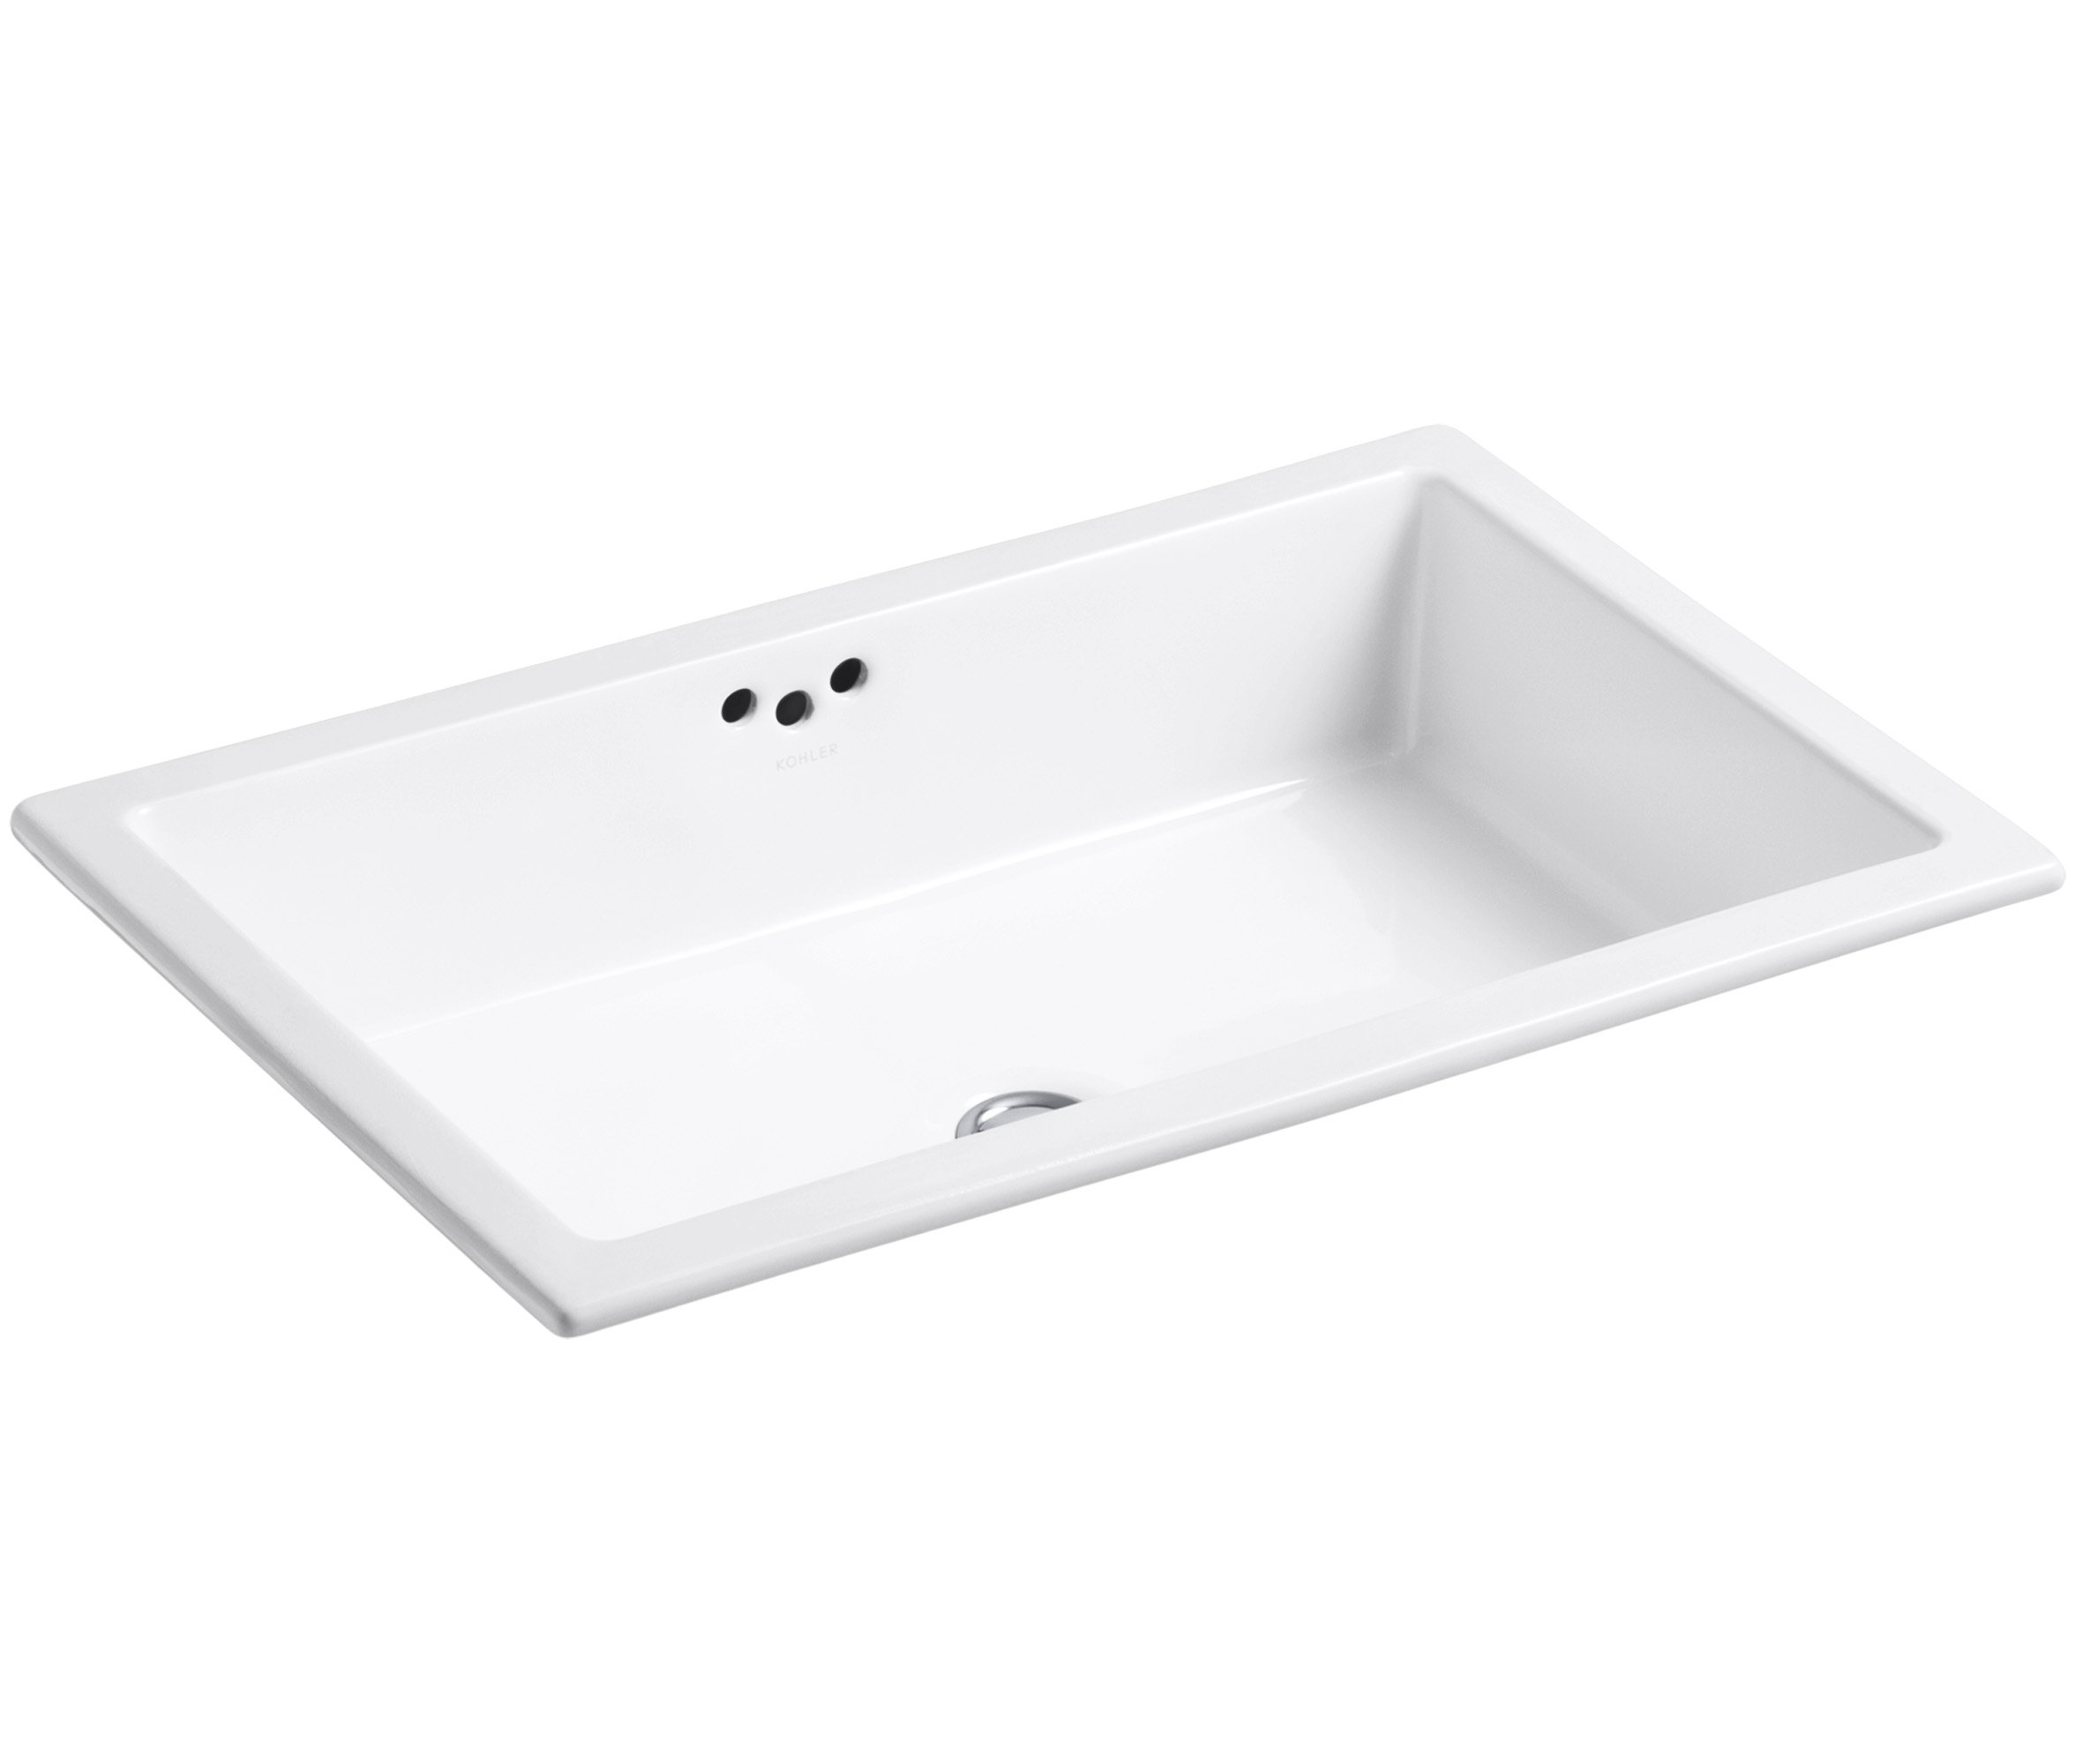 KOHLER K-2297-0 Kathryn Undercounter Bathroom Sink, White by Kohler